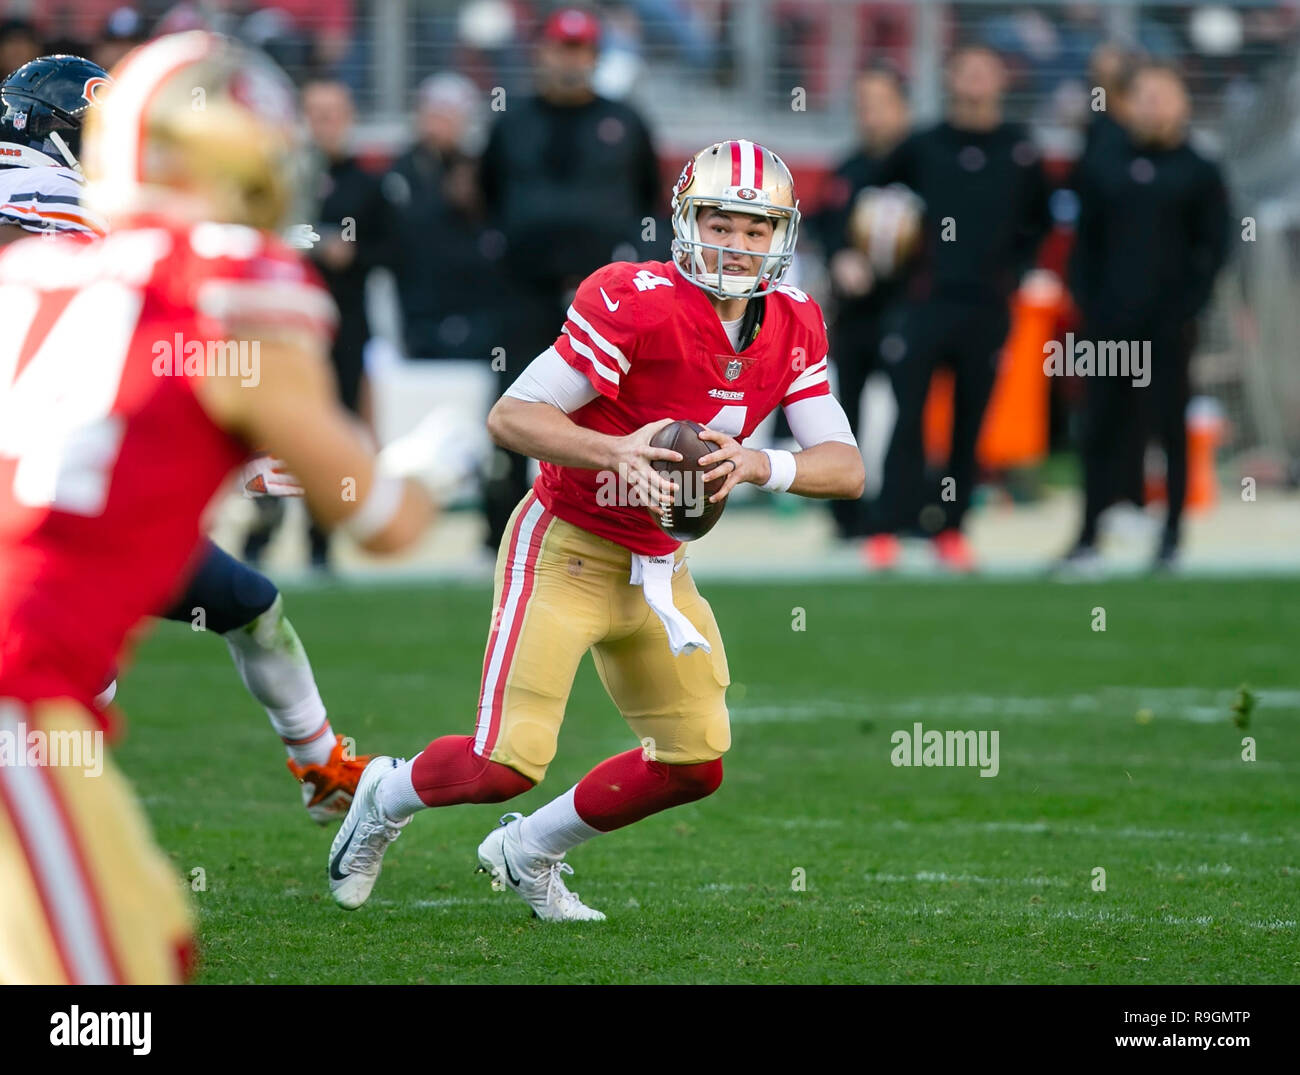 5895e7c39f4 Mullens Stock Photos   Mullens Stock Images - Alamy